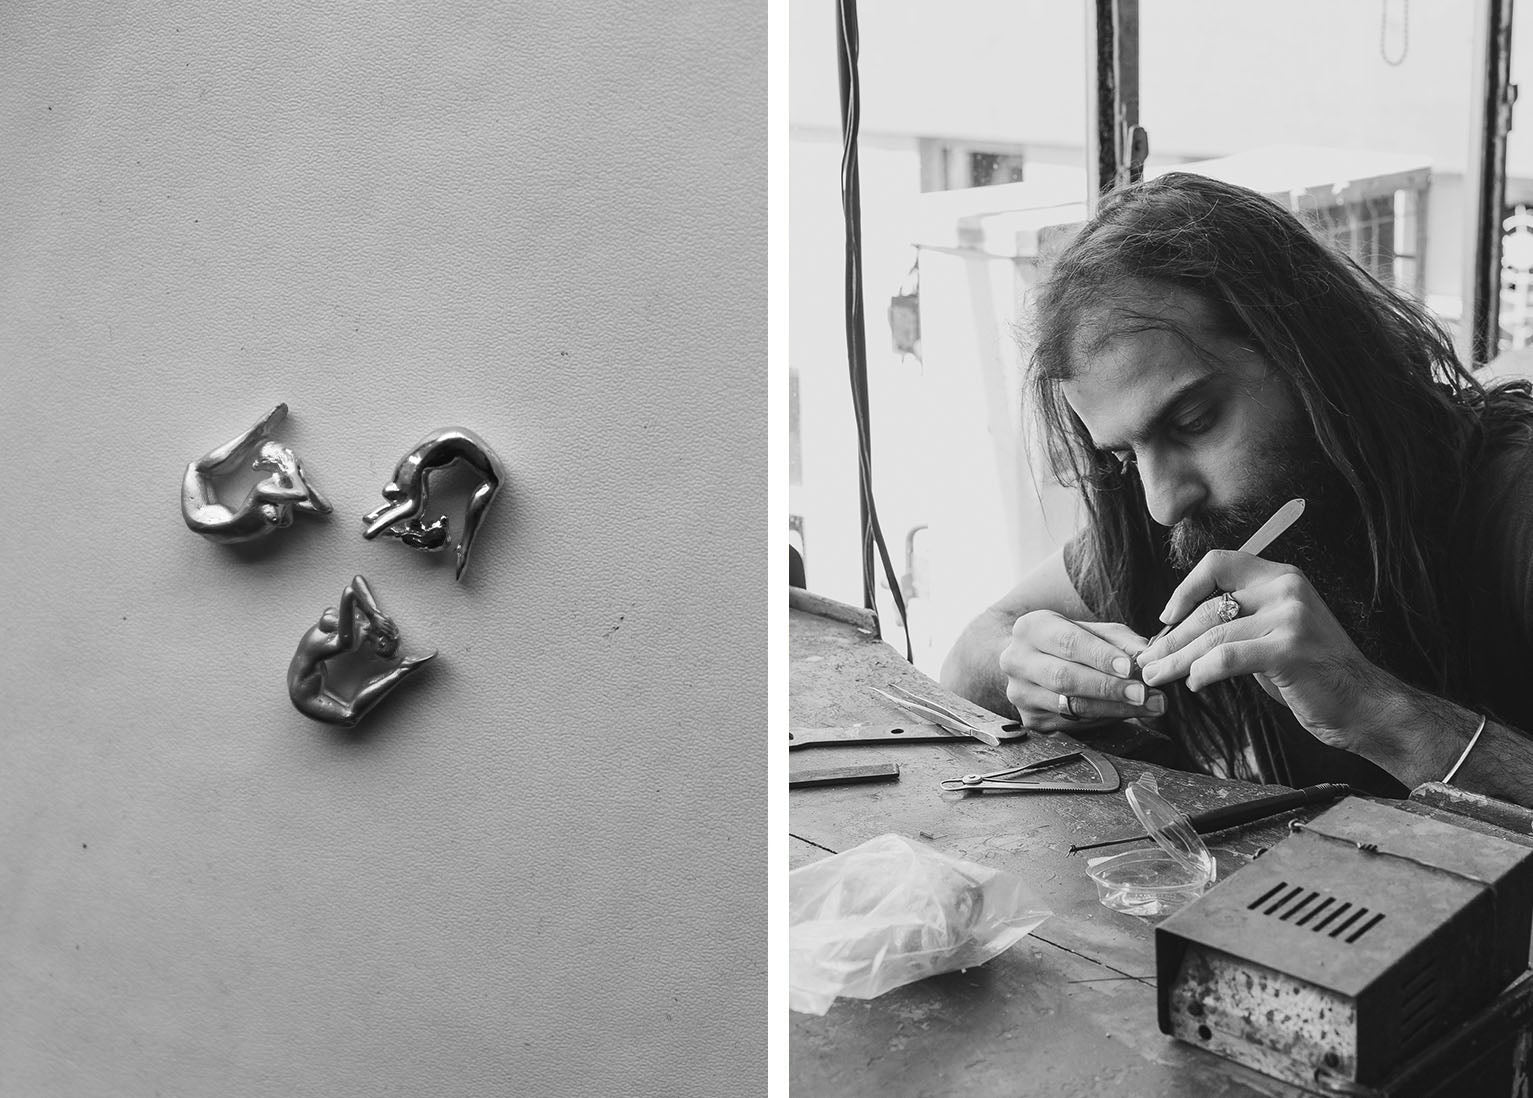 A photograph of a talented craftsman hand finishing jewellery in the workshop